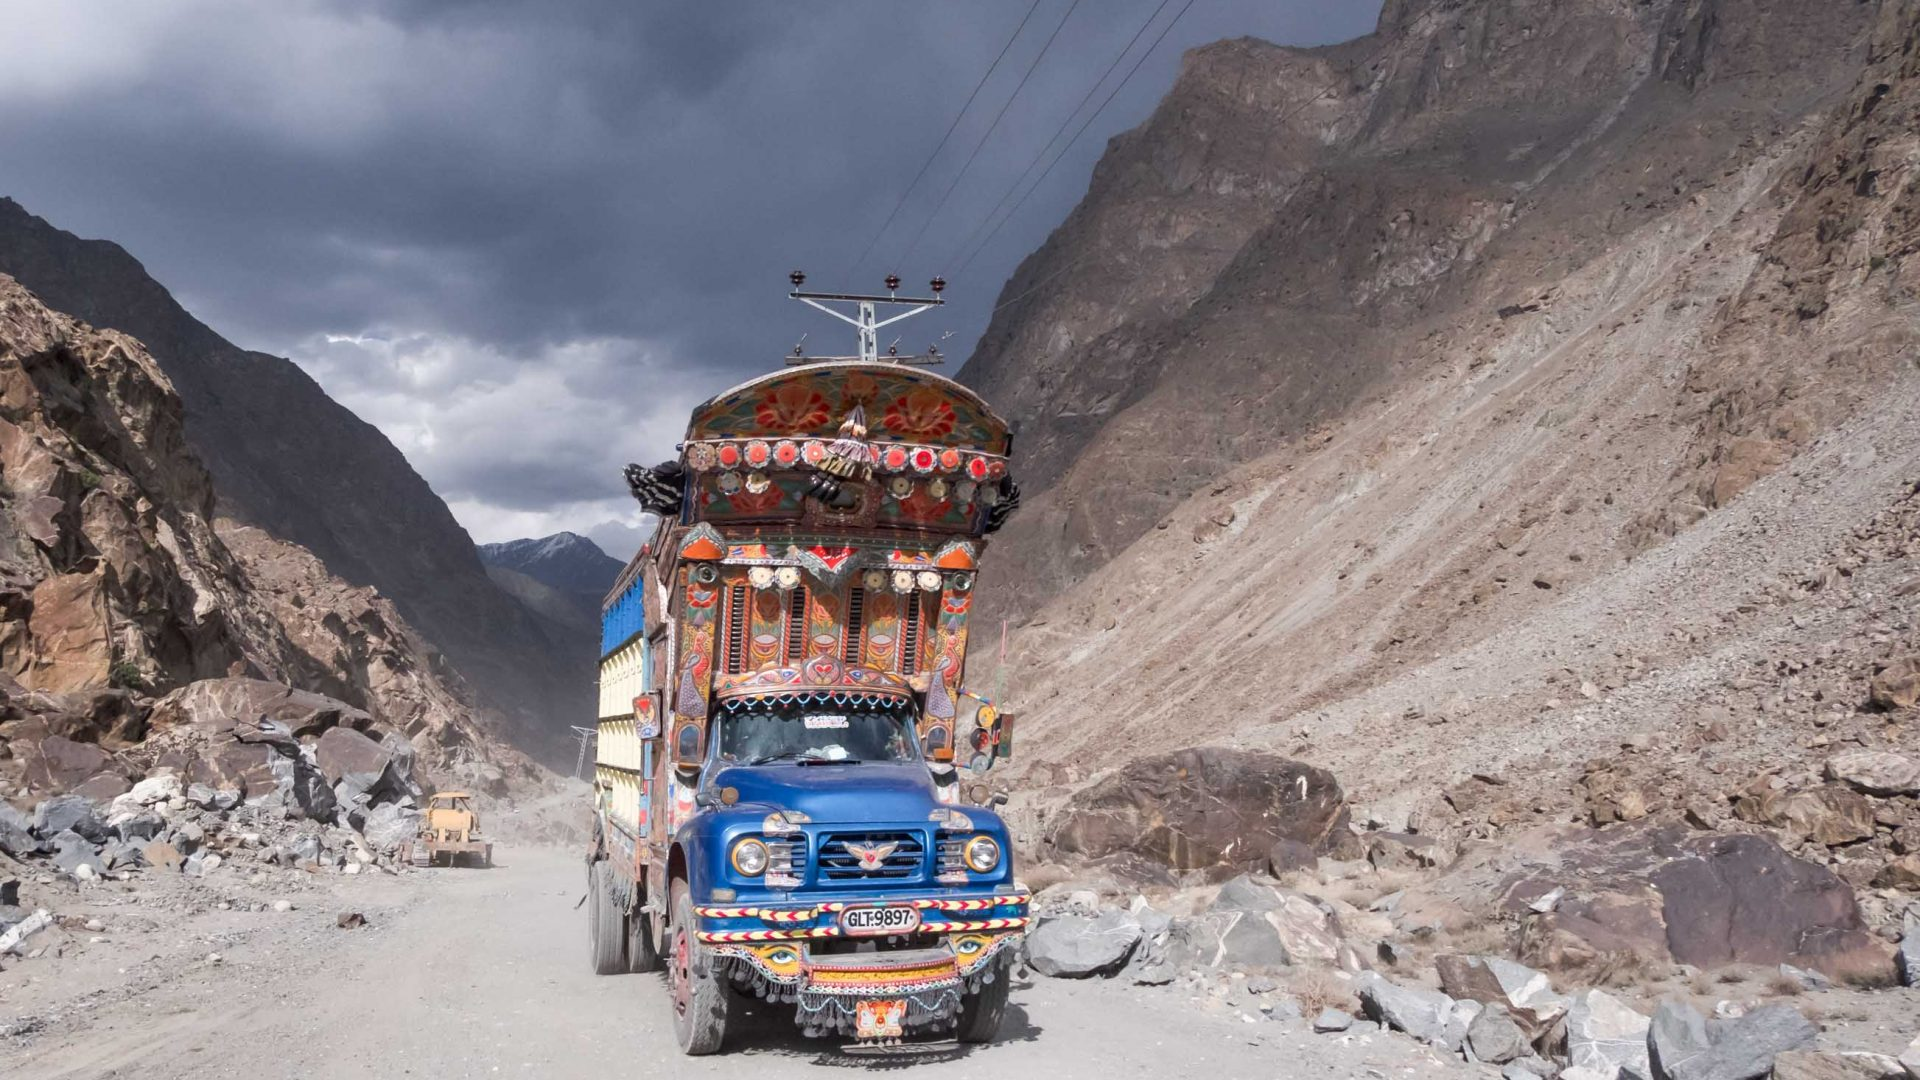 One of the many colorful trucks that you are likely to pass while riding in the Karokoram range in Pakistan.